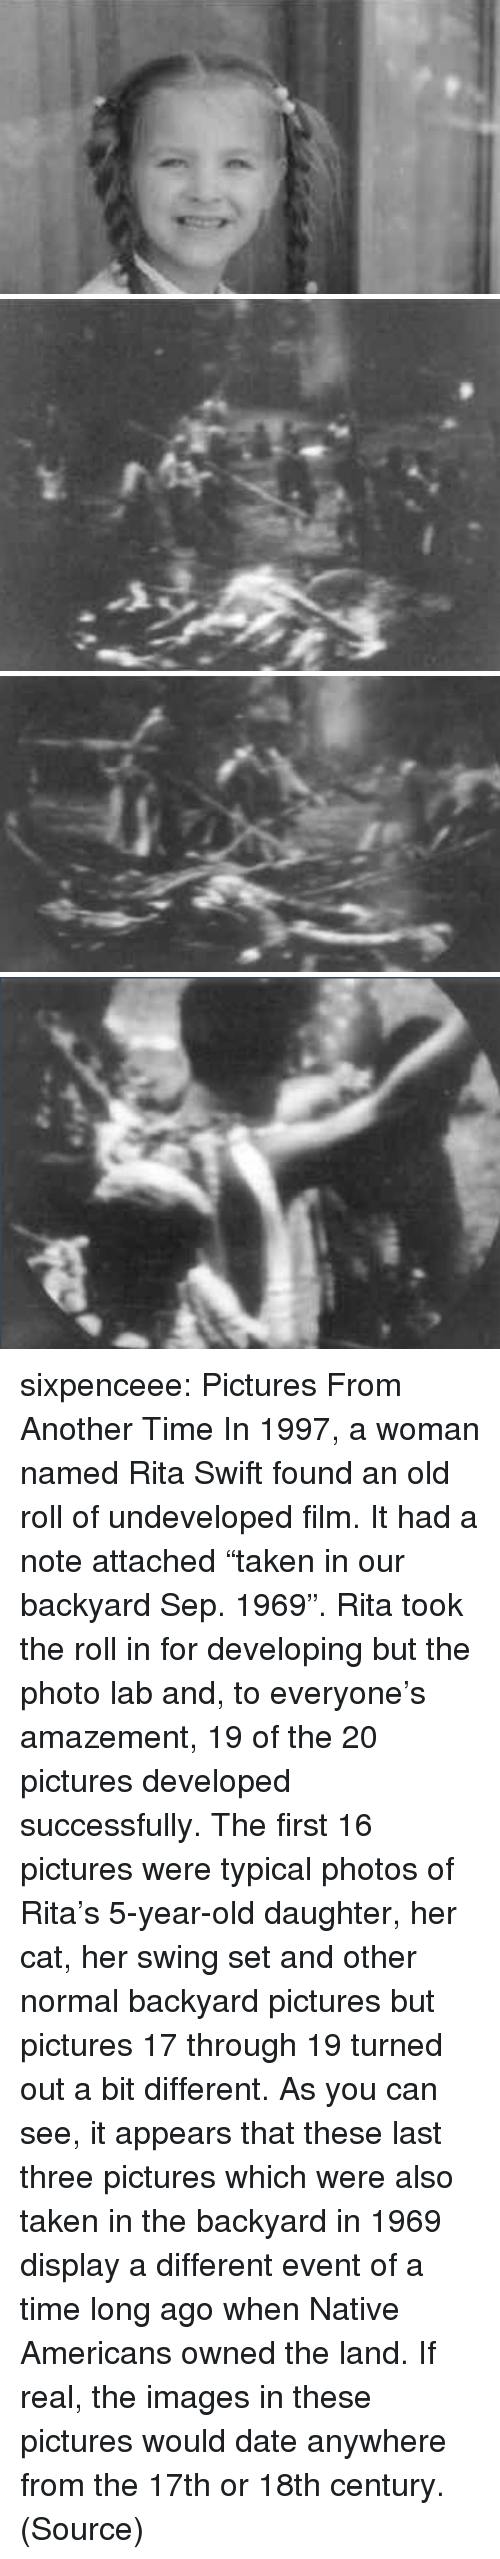 """native americans: sixpenceee: Pictures From Another Time In 1997, a woman named Rita Swift found an old roll of undeveloped film. It had a note attached """"taken in our backyard Sep. 1969"""". Rita took the roll in for developing but the photo lab and, to everyone's amazement, 19 of the 20 pictures developed successfully. The first 16 pictures were typical photos of Rita's 5-year-old daughter, her cat, her swing set and other normal backyard pictures but pictures 17 through 19 turned out a bit different. As you can see, it appears that these last three pictures which were also taken in the backyard in 1969 display a different event of a time long ago when Native Americans owned the land. If real, the images in these pictures would date anywhere from the 17th or 18th century. (Source)"""